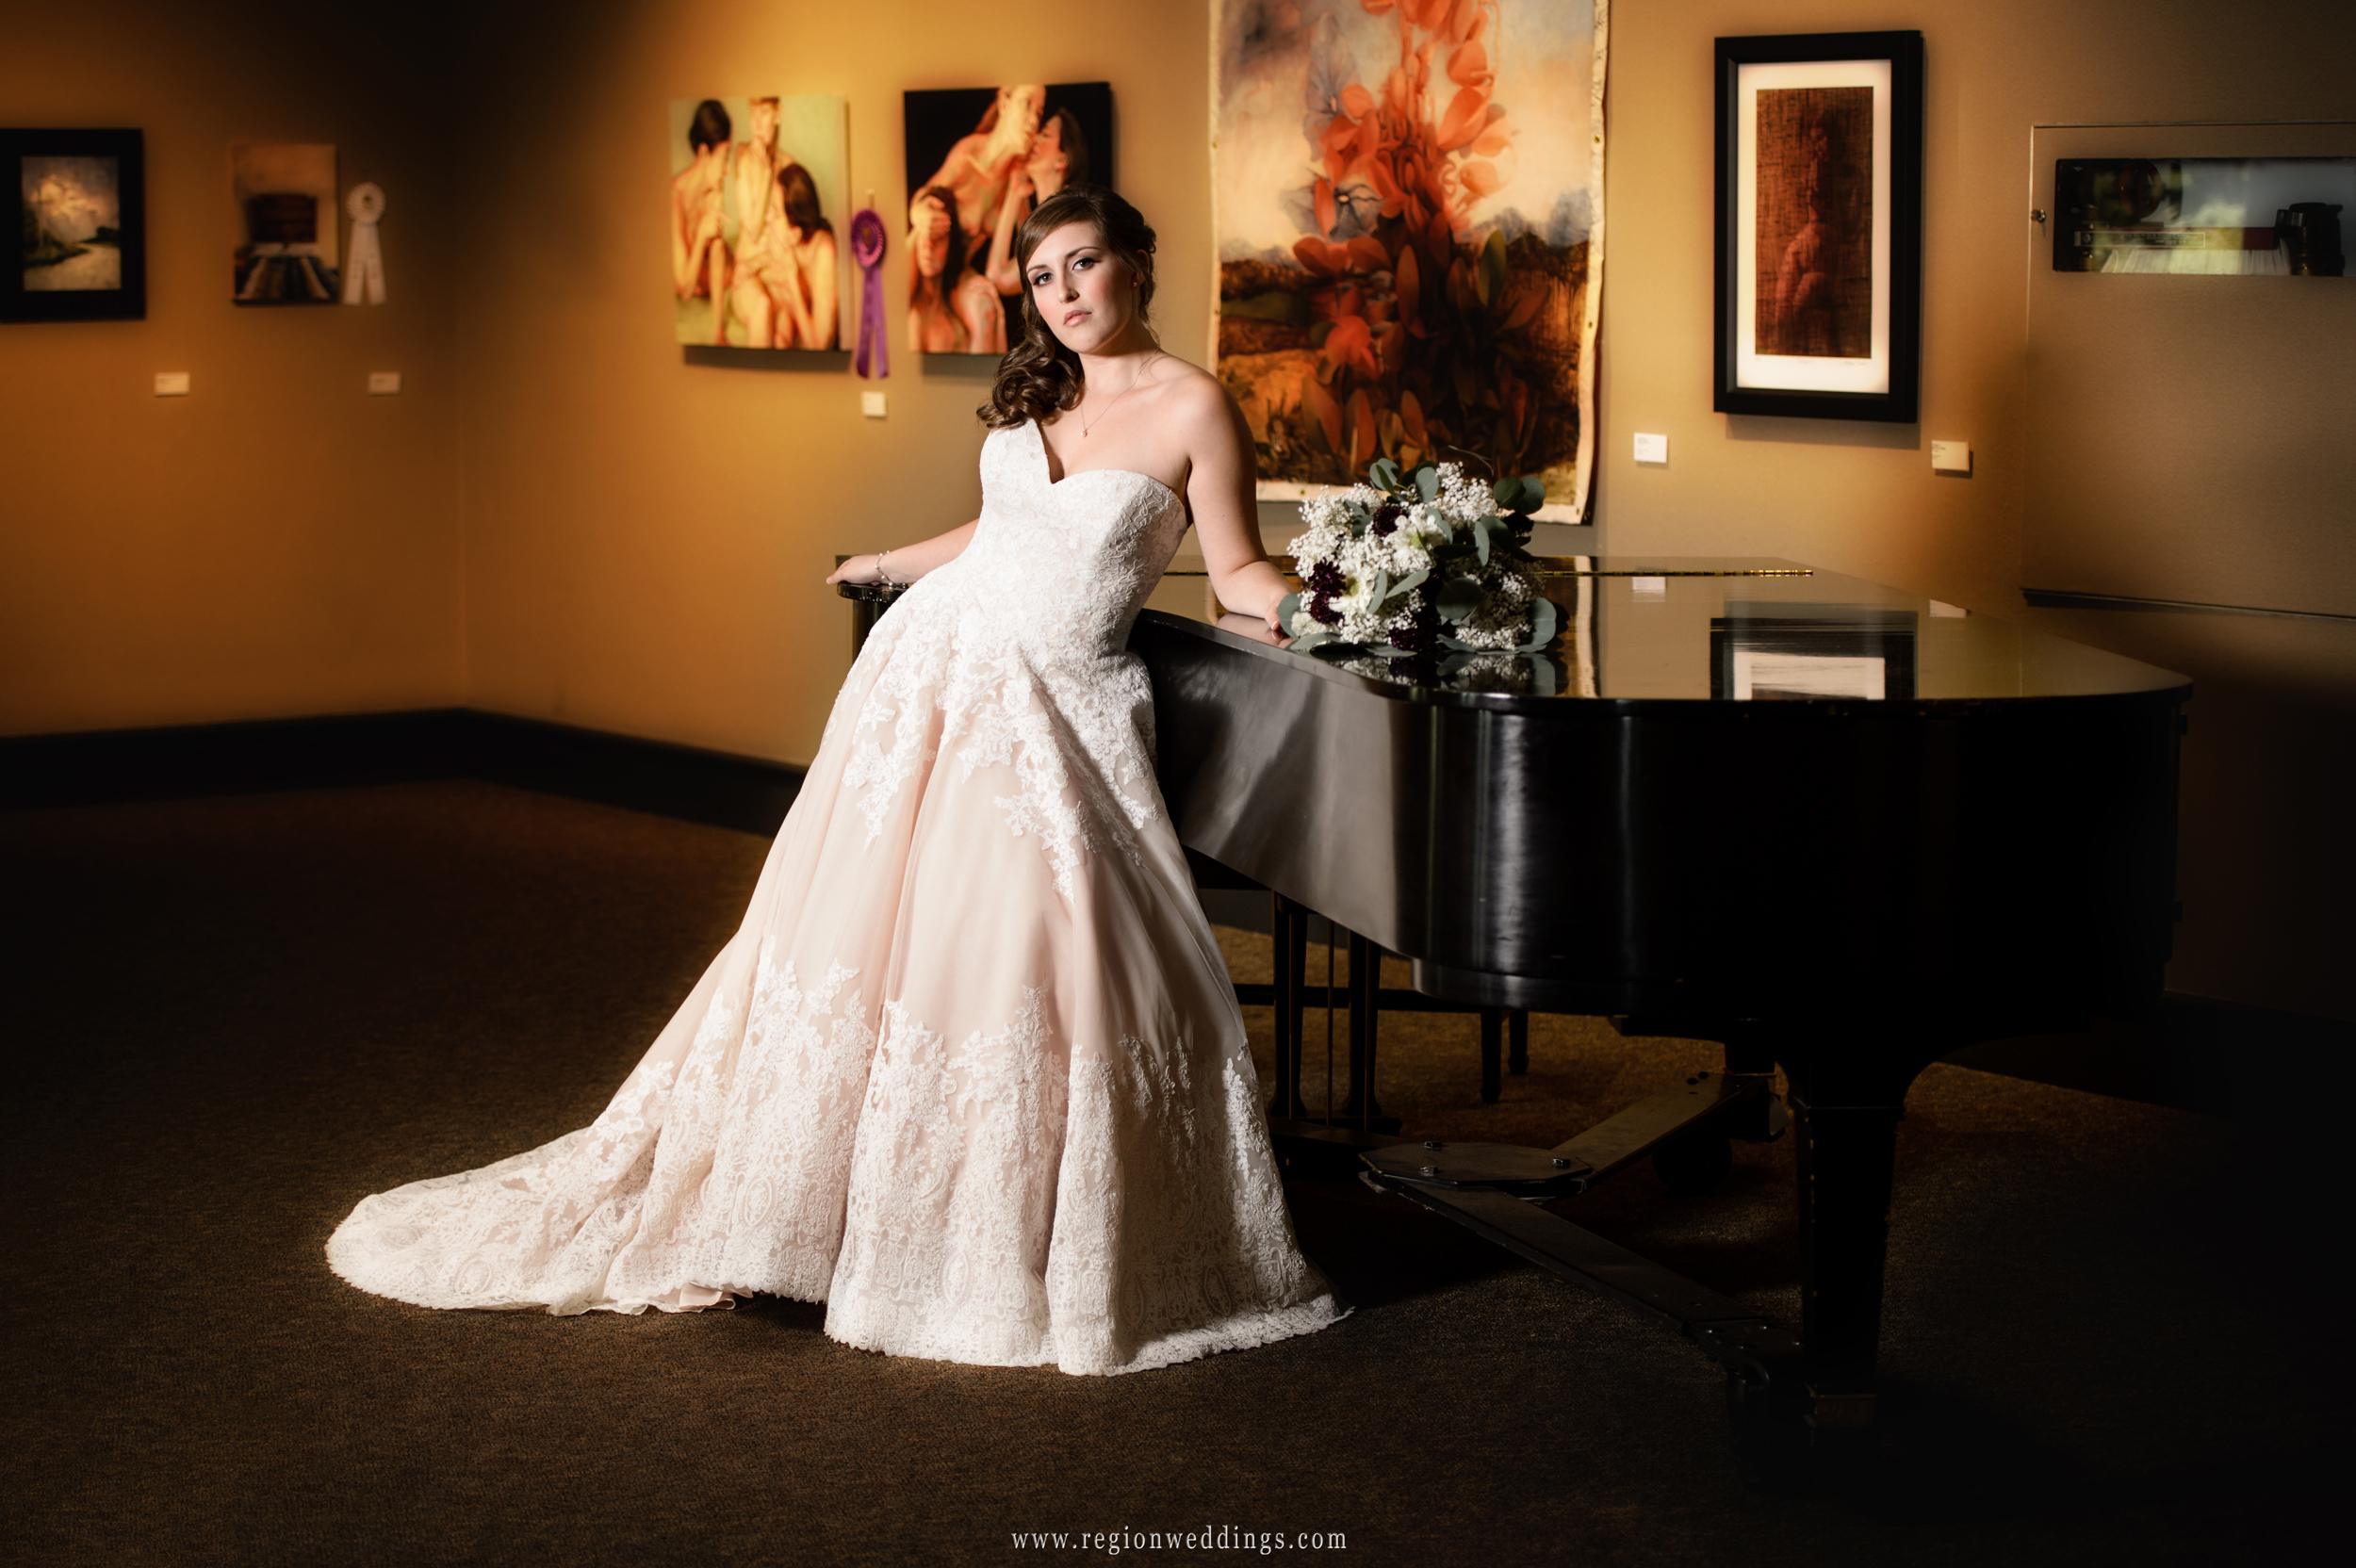 The bride rests against the piano at The Center For Visual and Performing Arts.